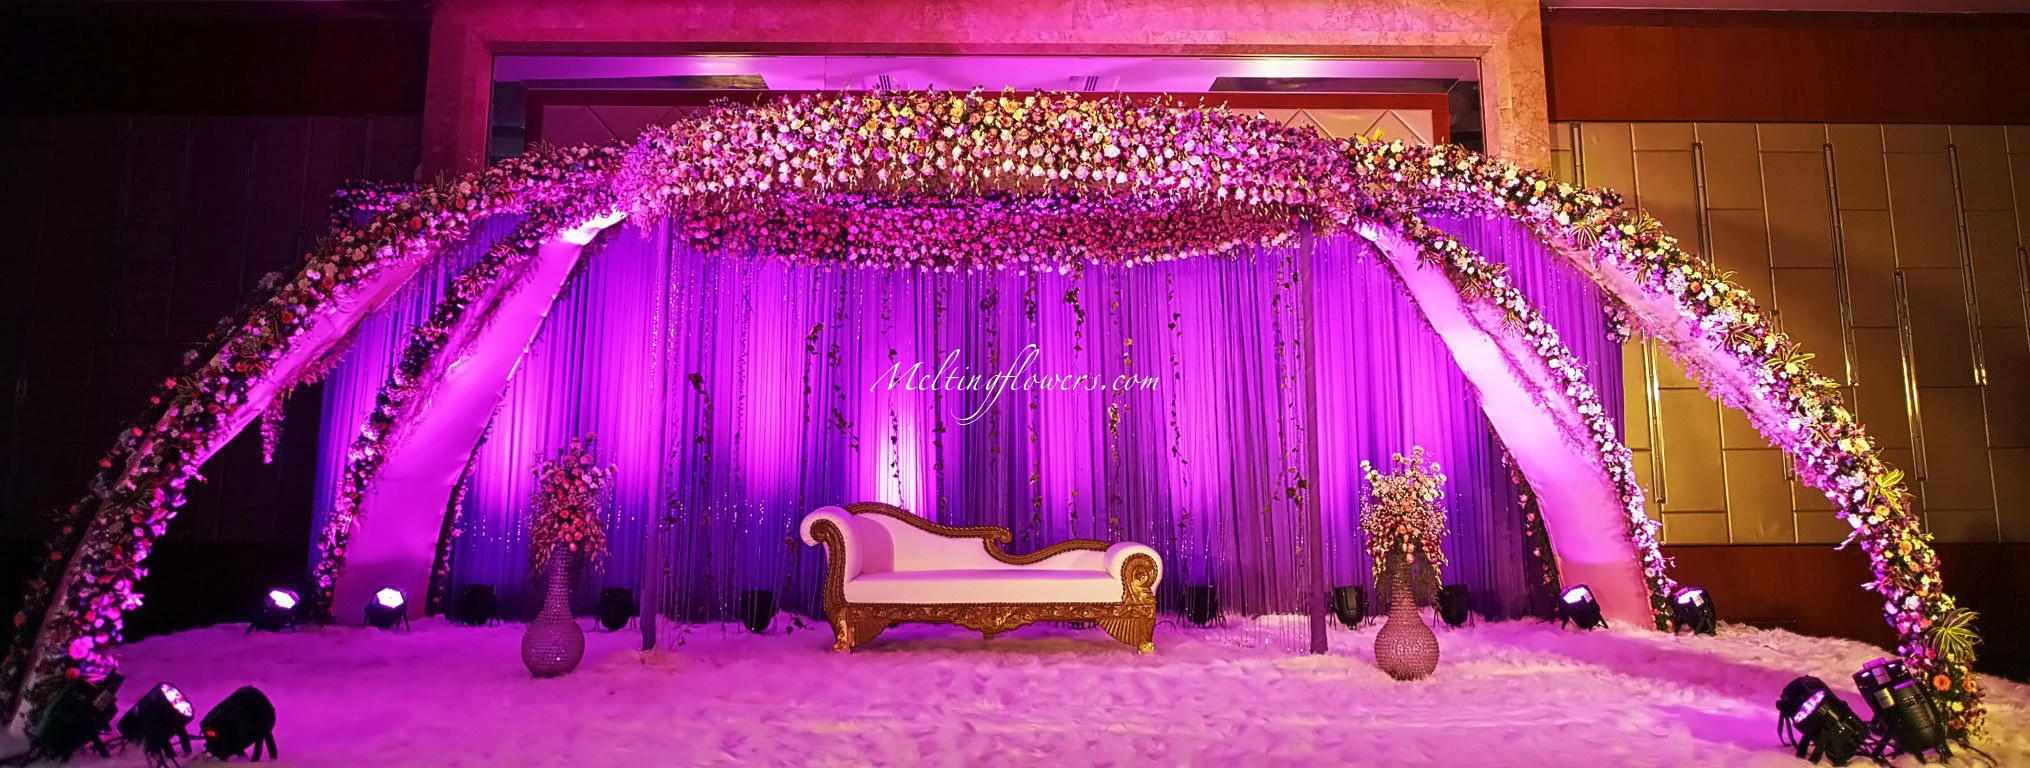 wedding stage decorations in - photo #17